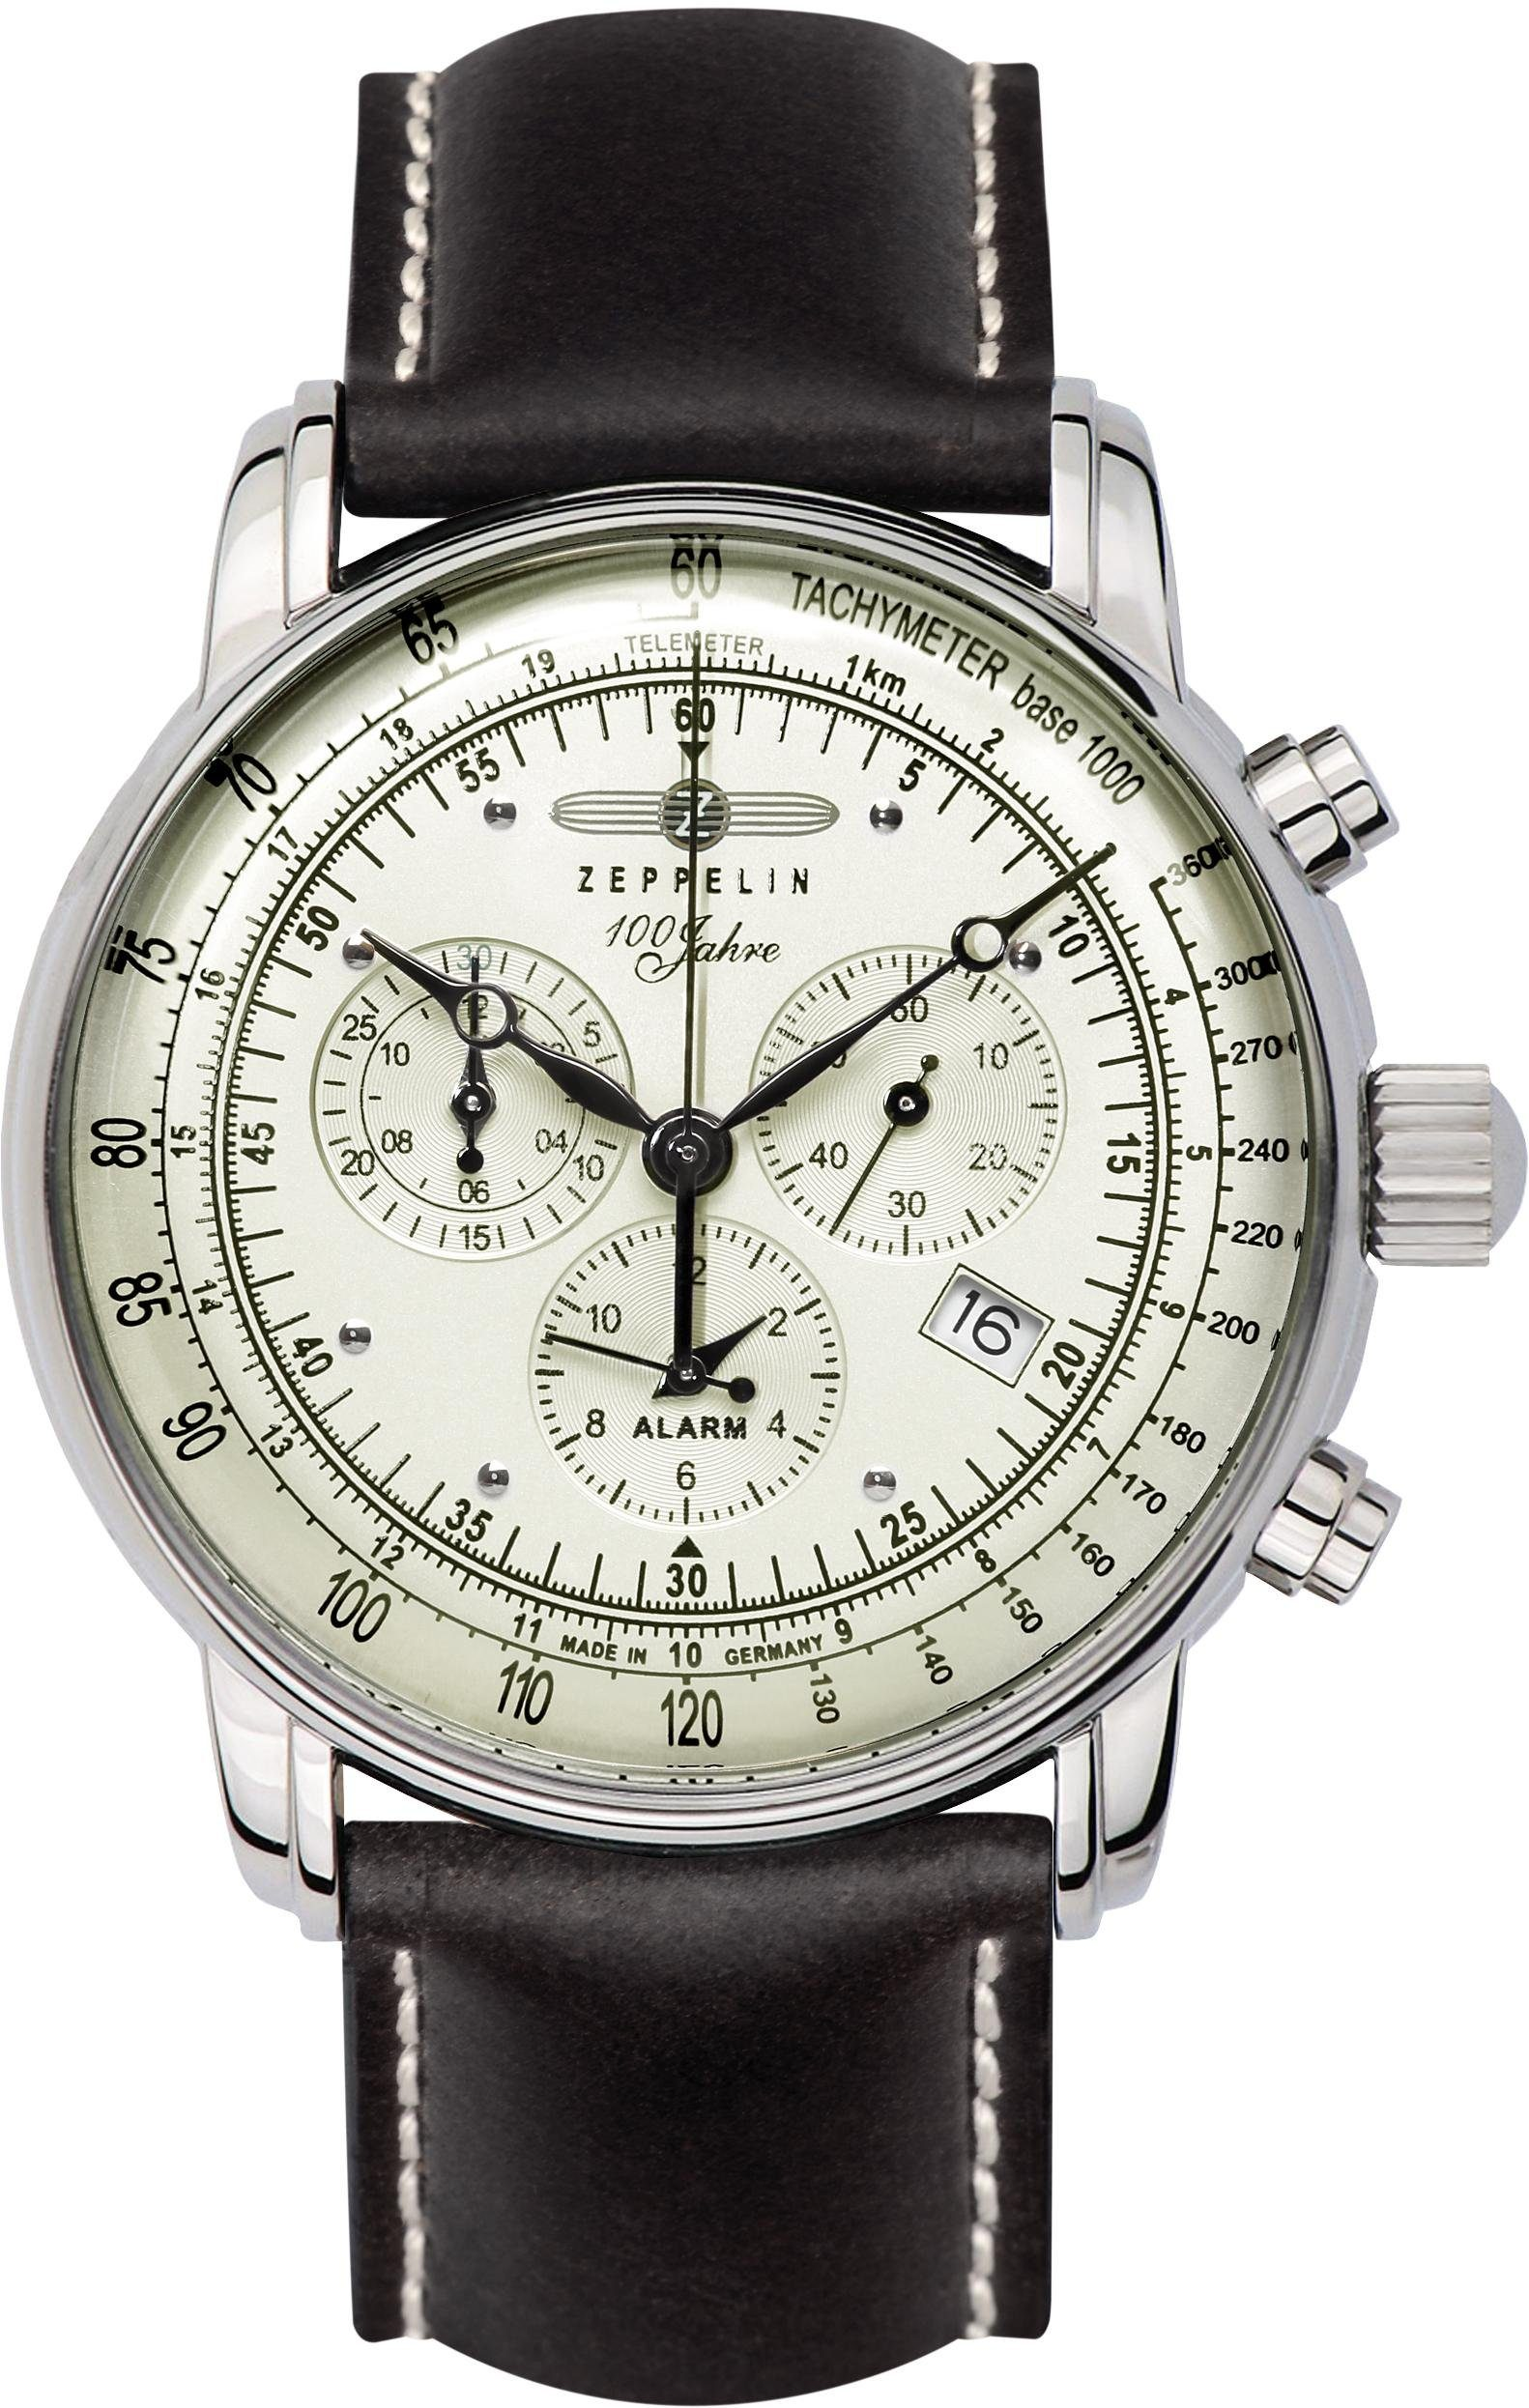 ZEPPELIN Chronograph »100 Jahre Zeppelin, 8680-3« Made in Germany